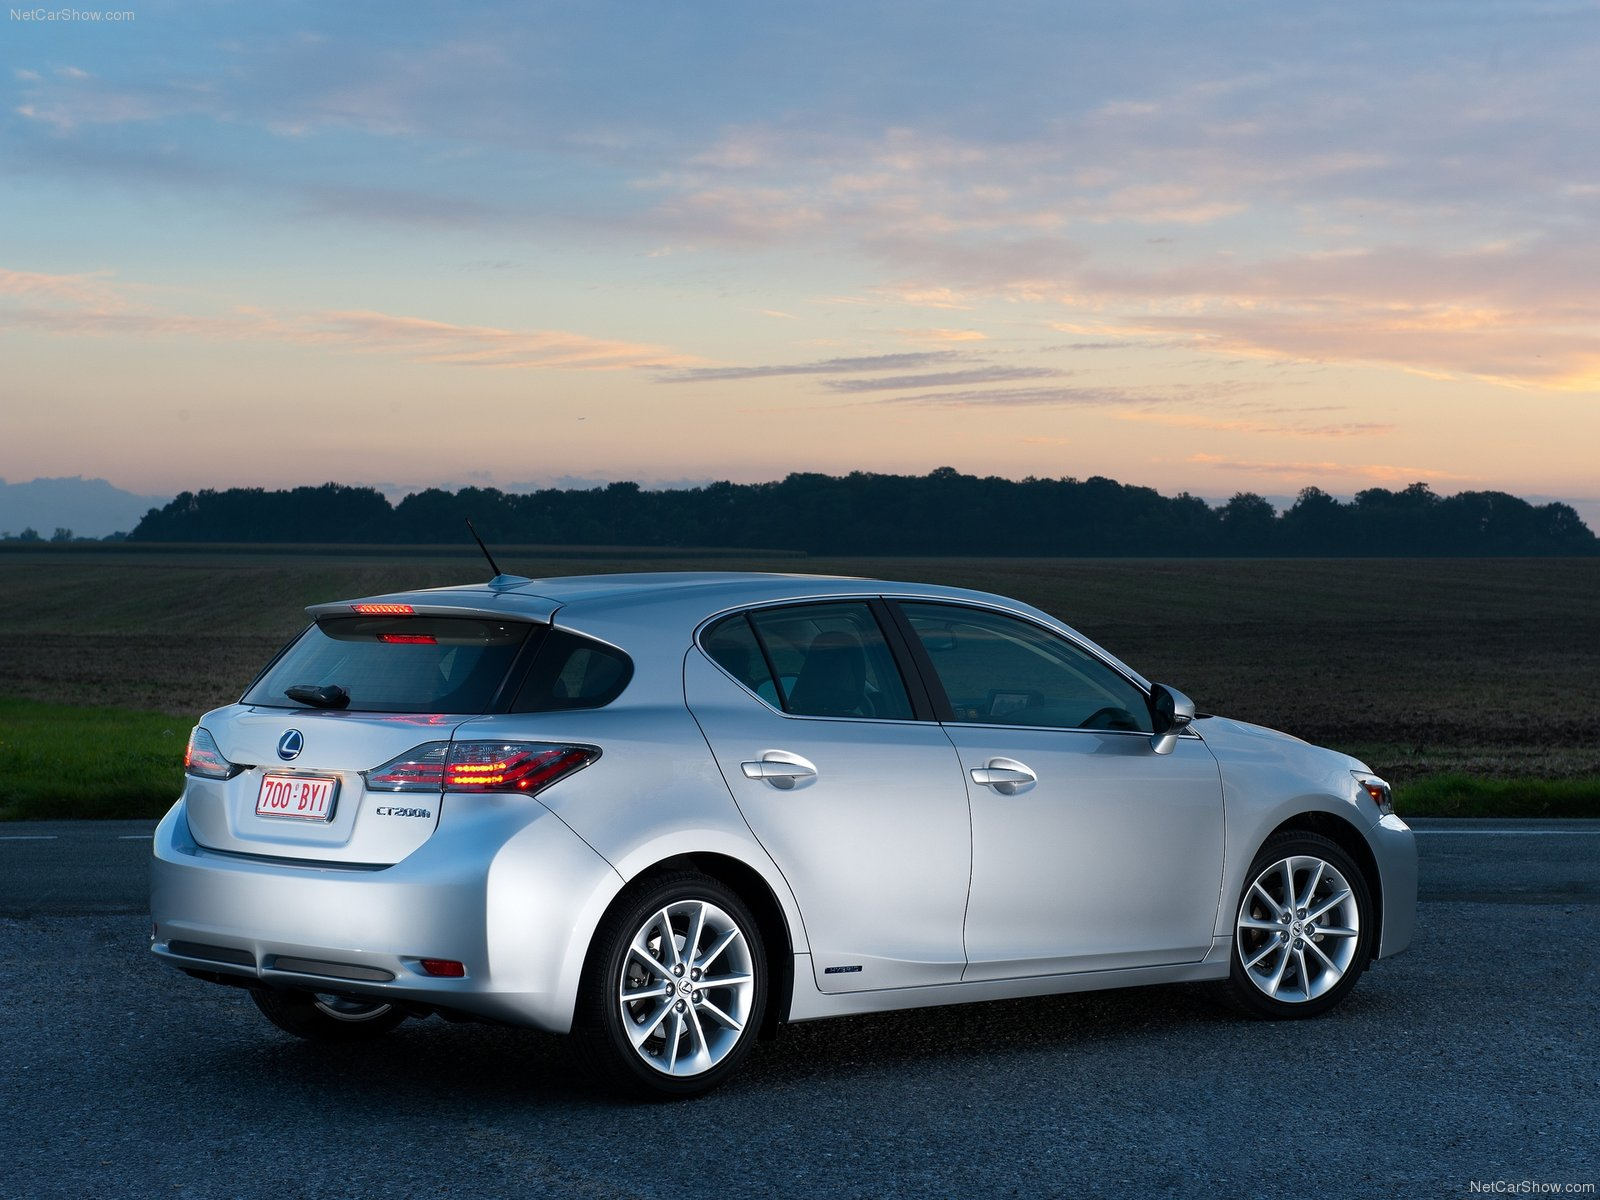 Lexus CT200h 5 Door Hatchback 2011